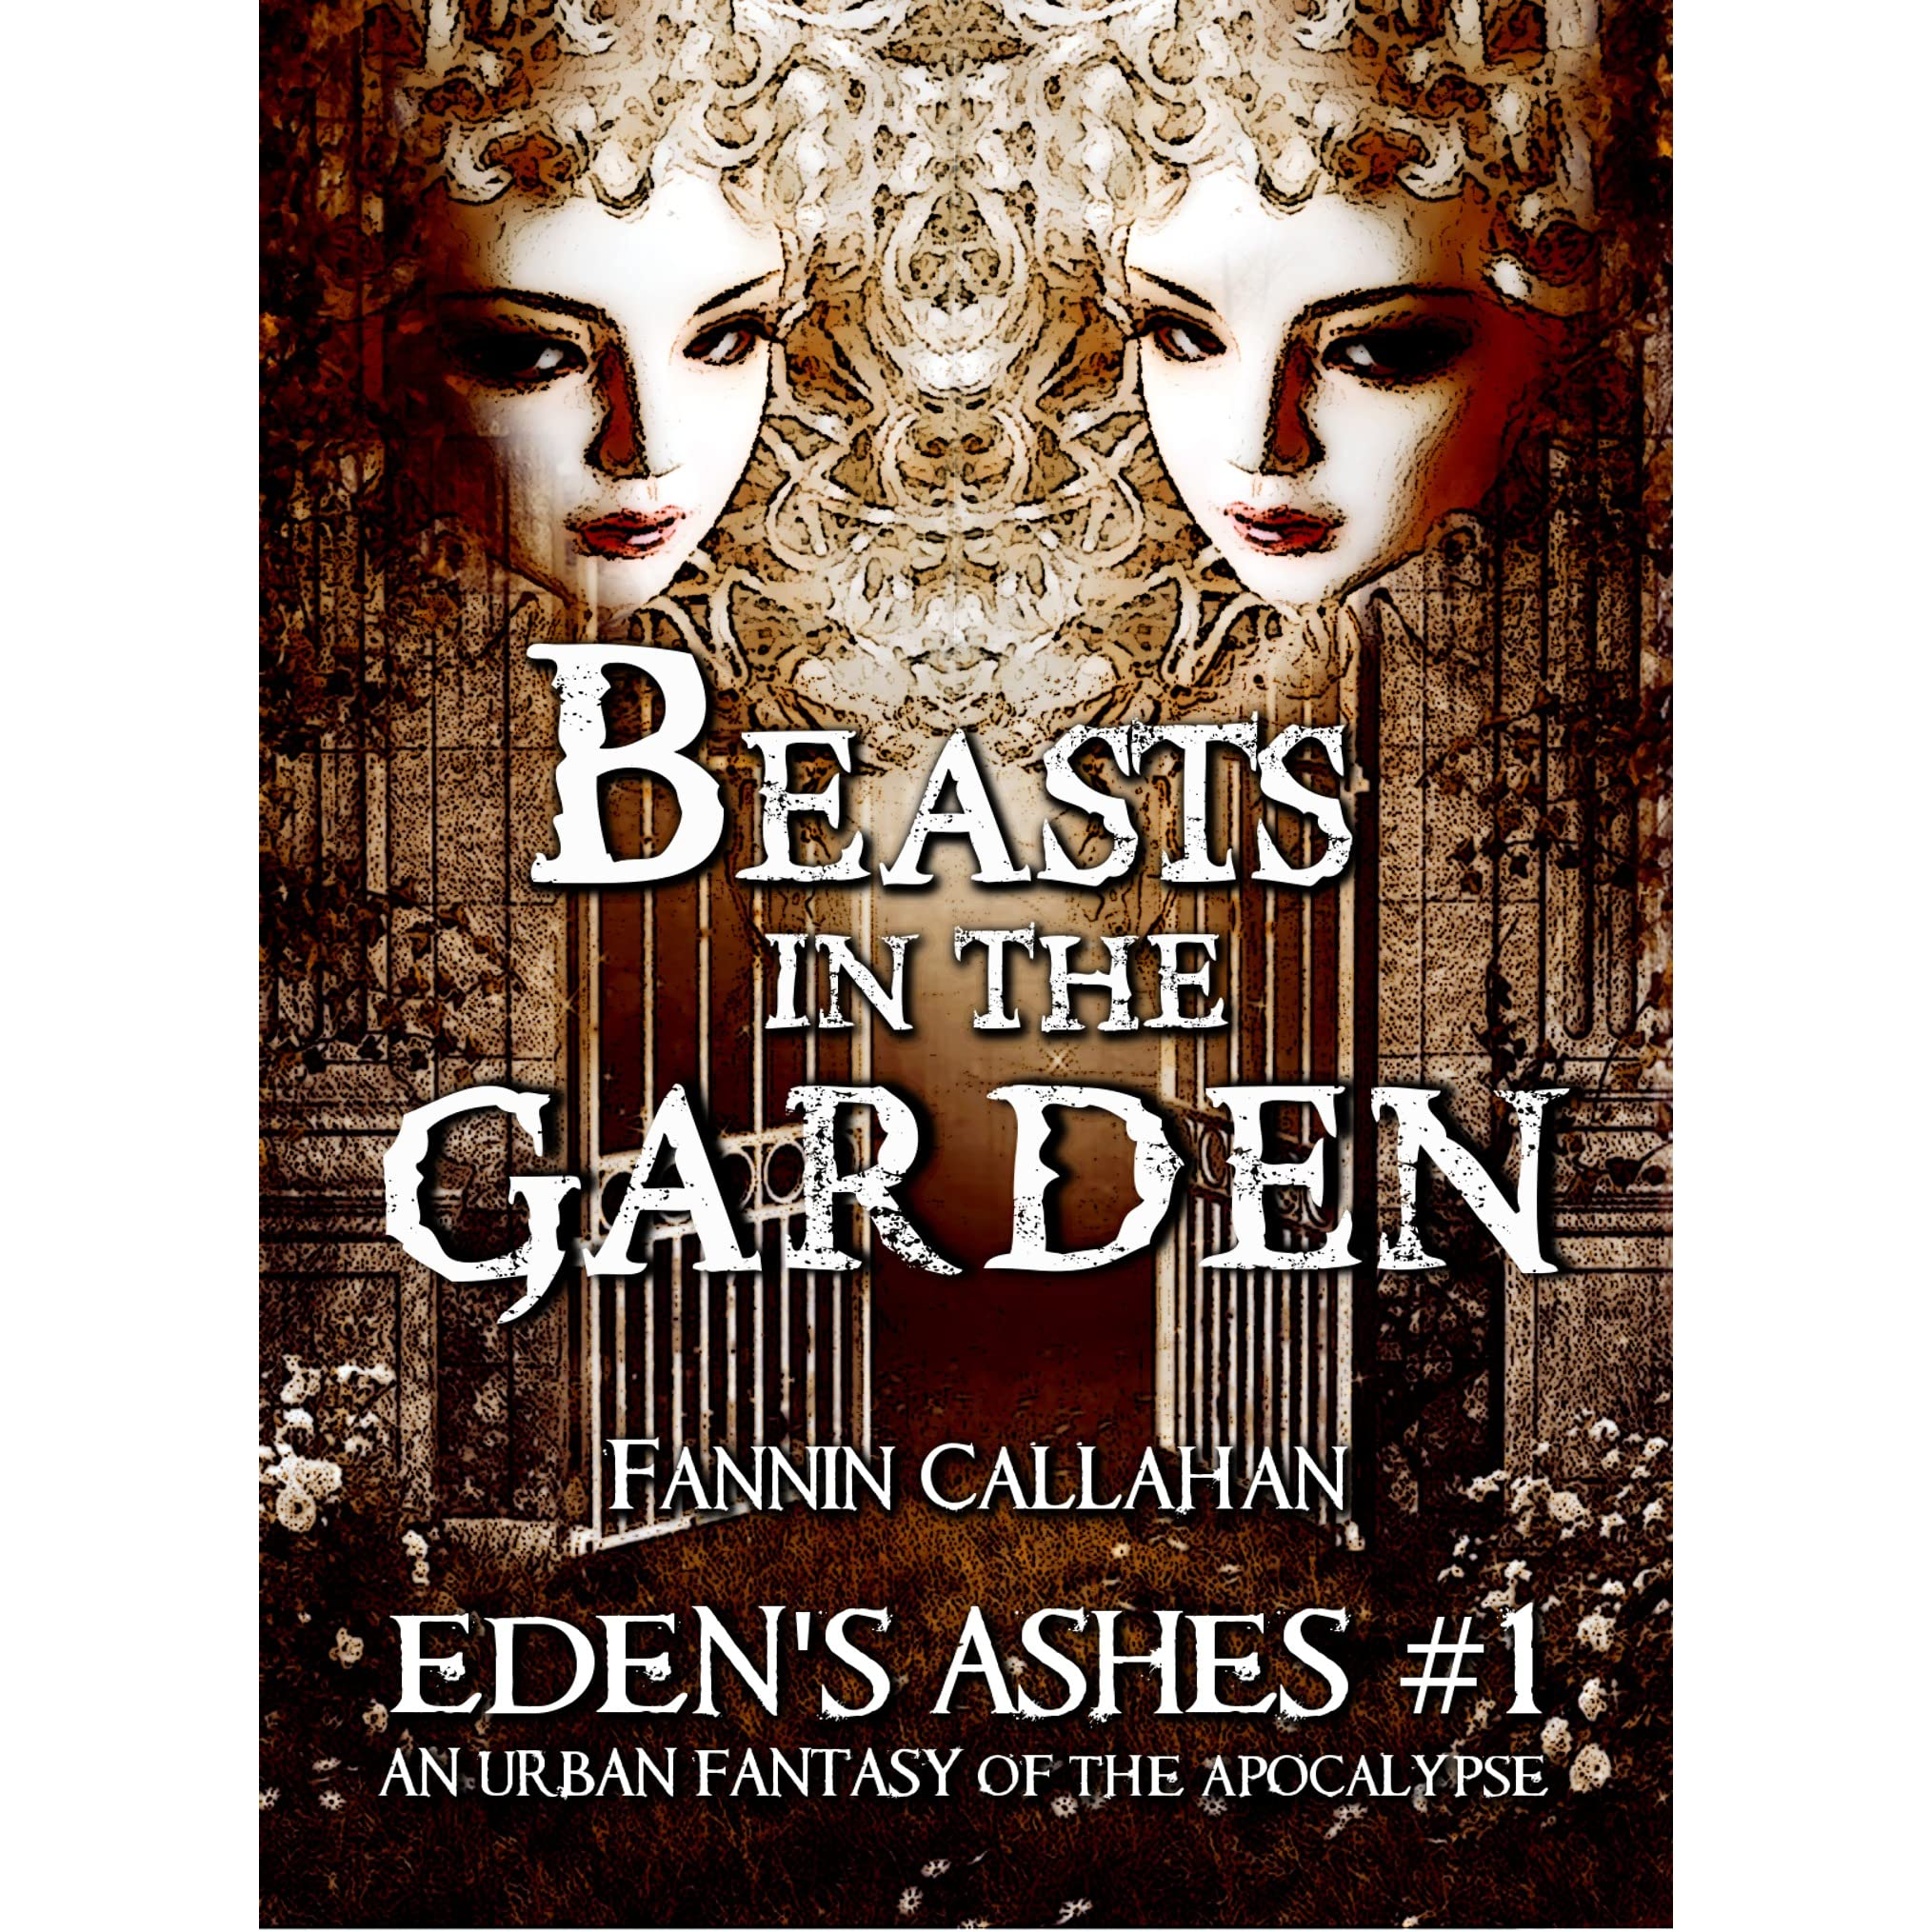 Beasts in the Garden Eden\'s Ashes #1 by Fannin Callahan